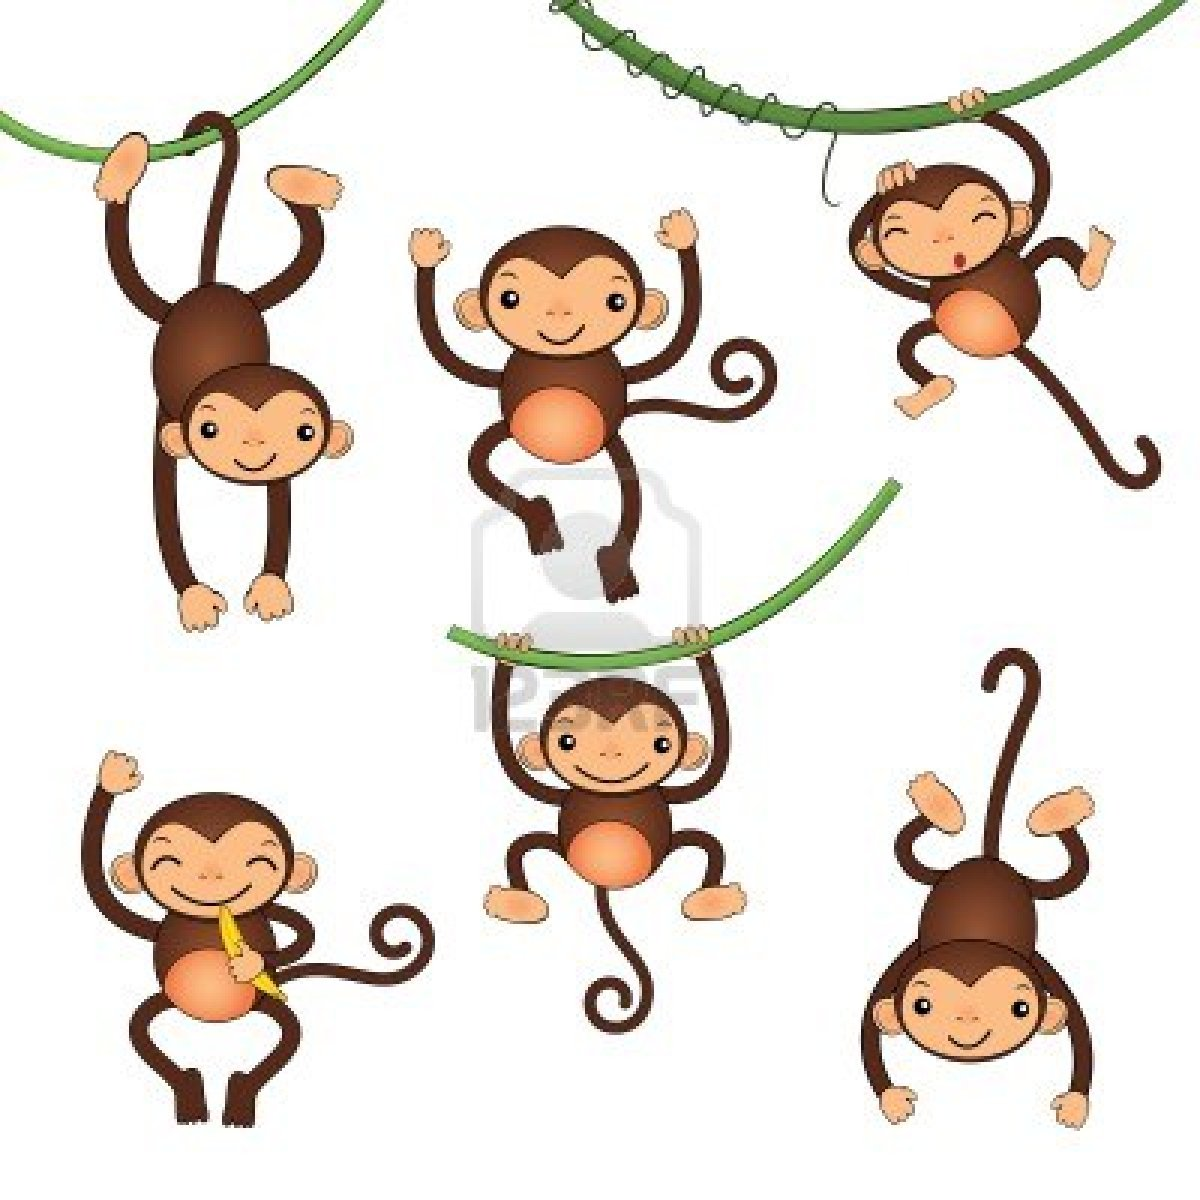 1200x1200 Hanging Monkey Cartoon Group